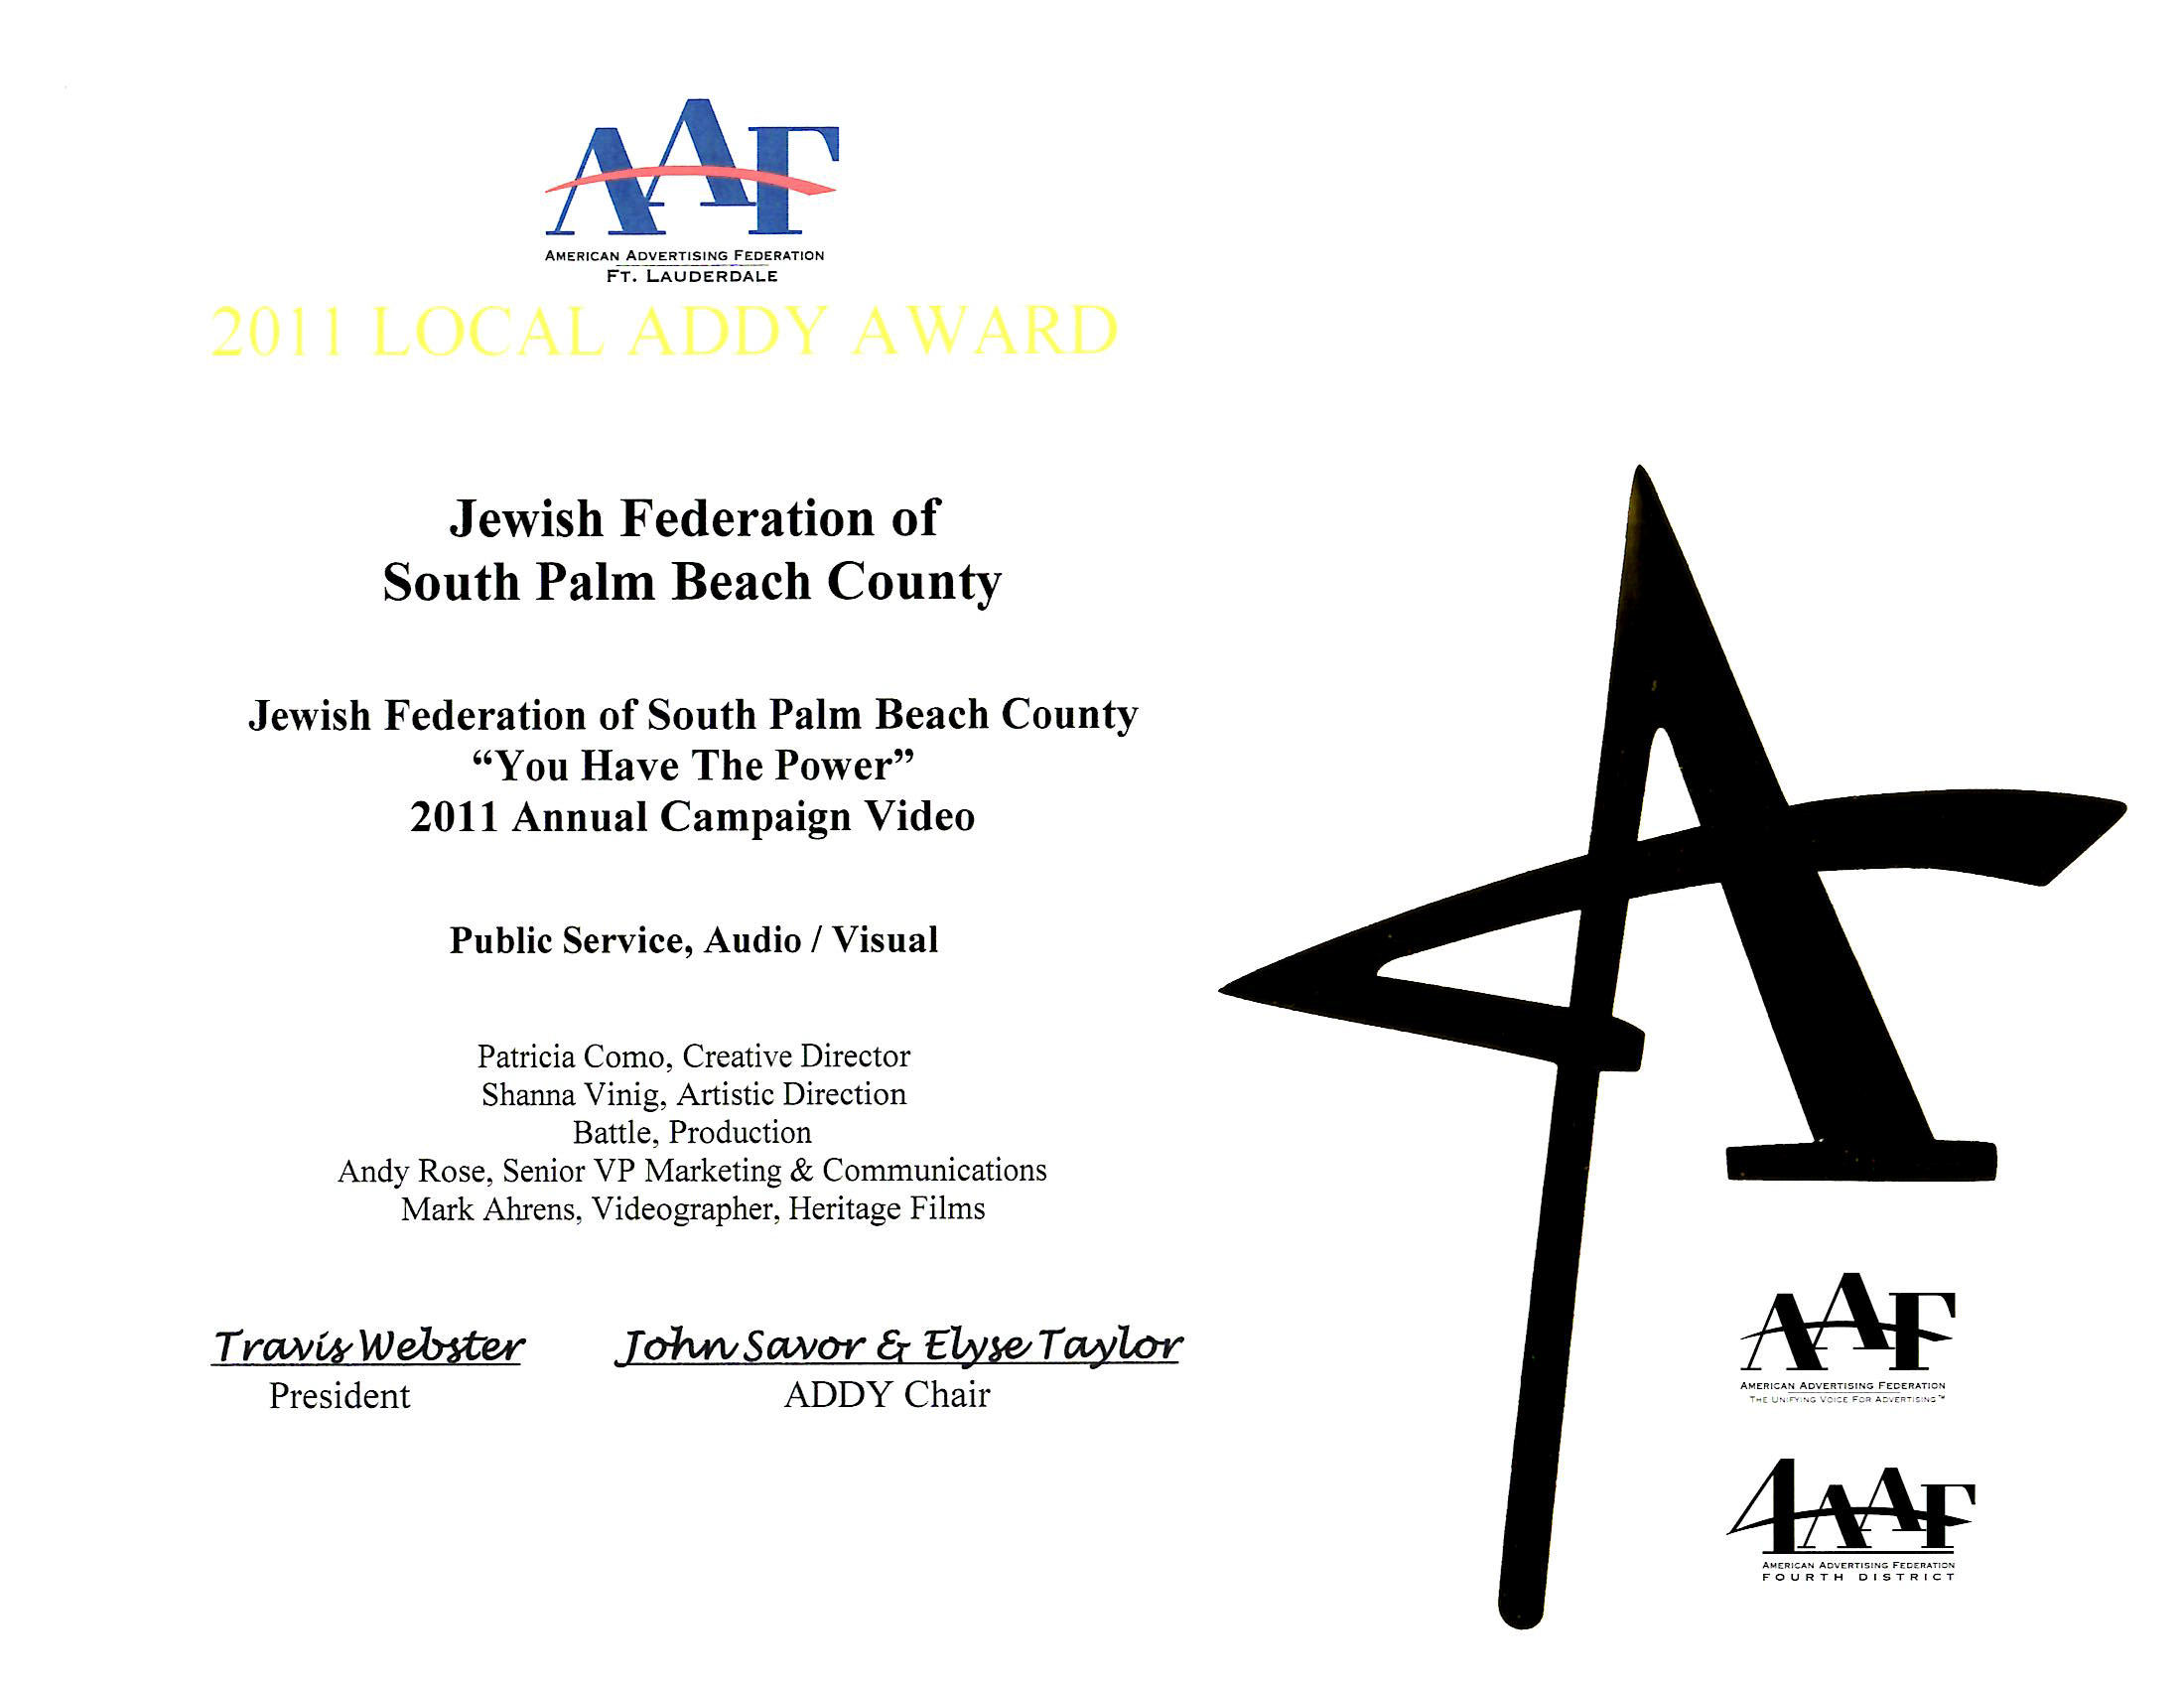 2011 Addy Award - -You Have The Power